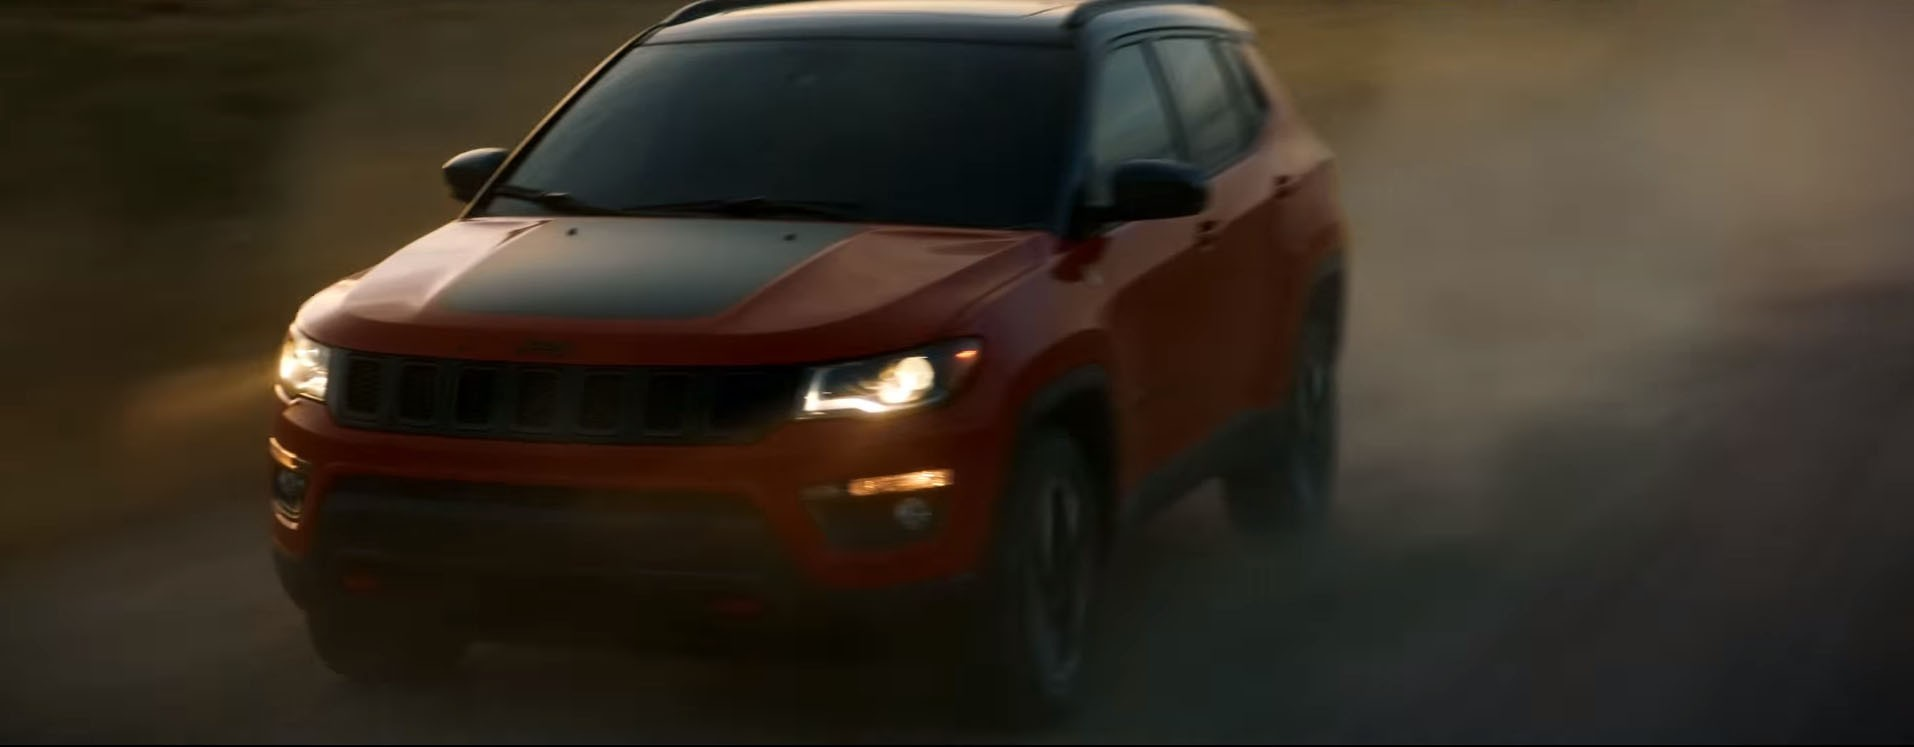 best ads that were ever made 8 photos 2017 jeep compass commercial 2017 jeep compass commercial